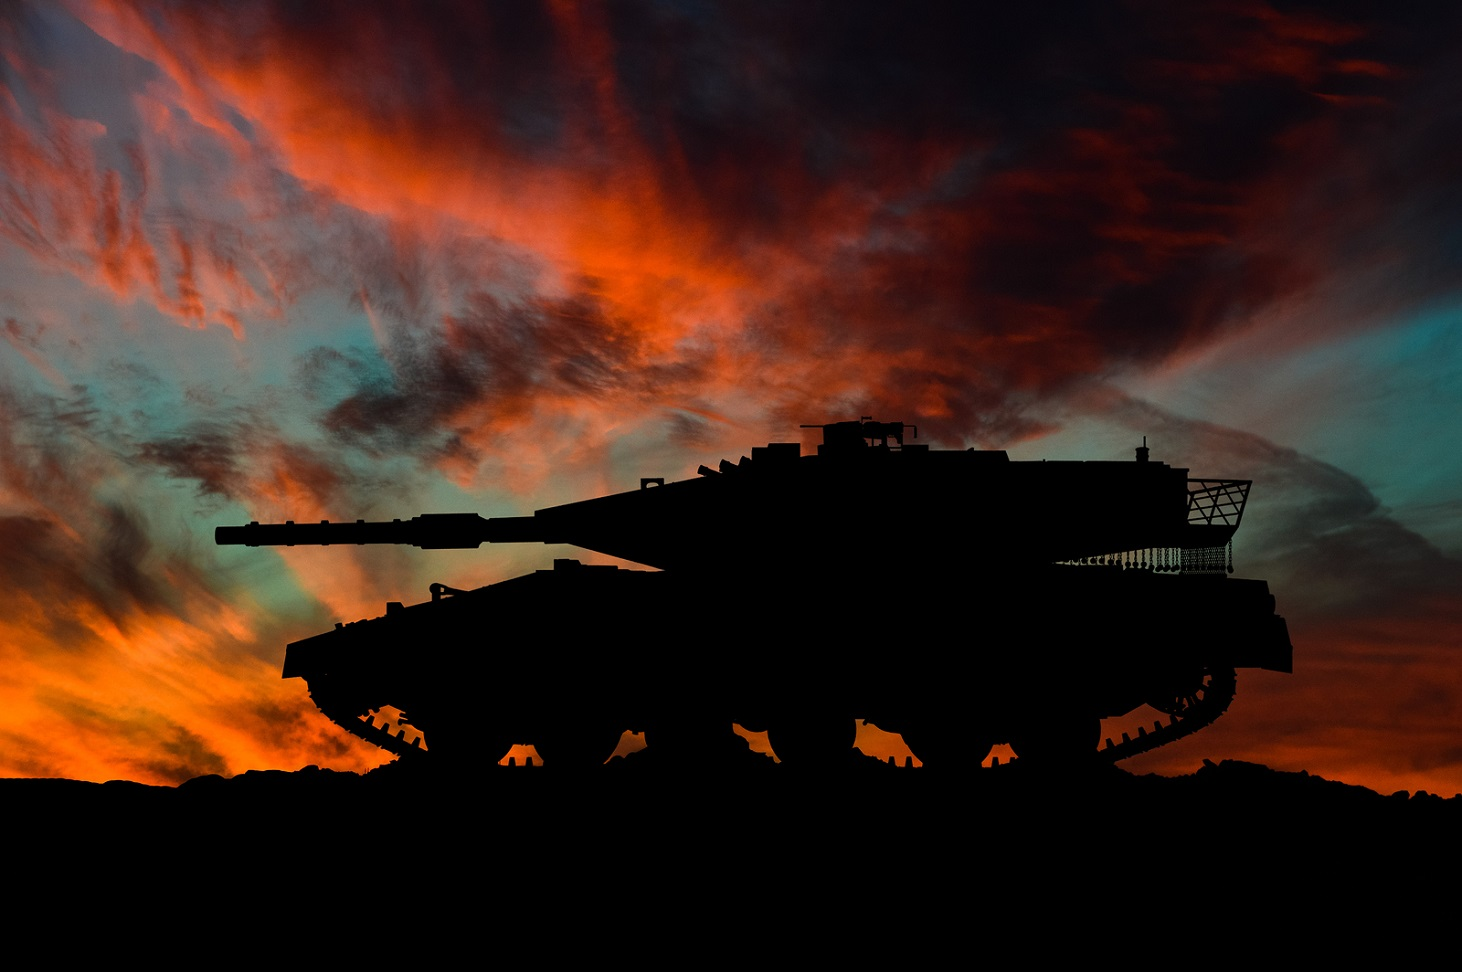 Israeli main battle tank silhouette / 3d illustration